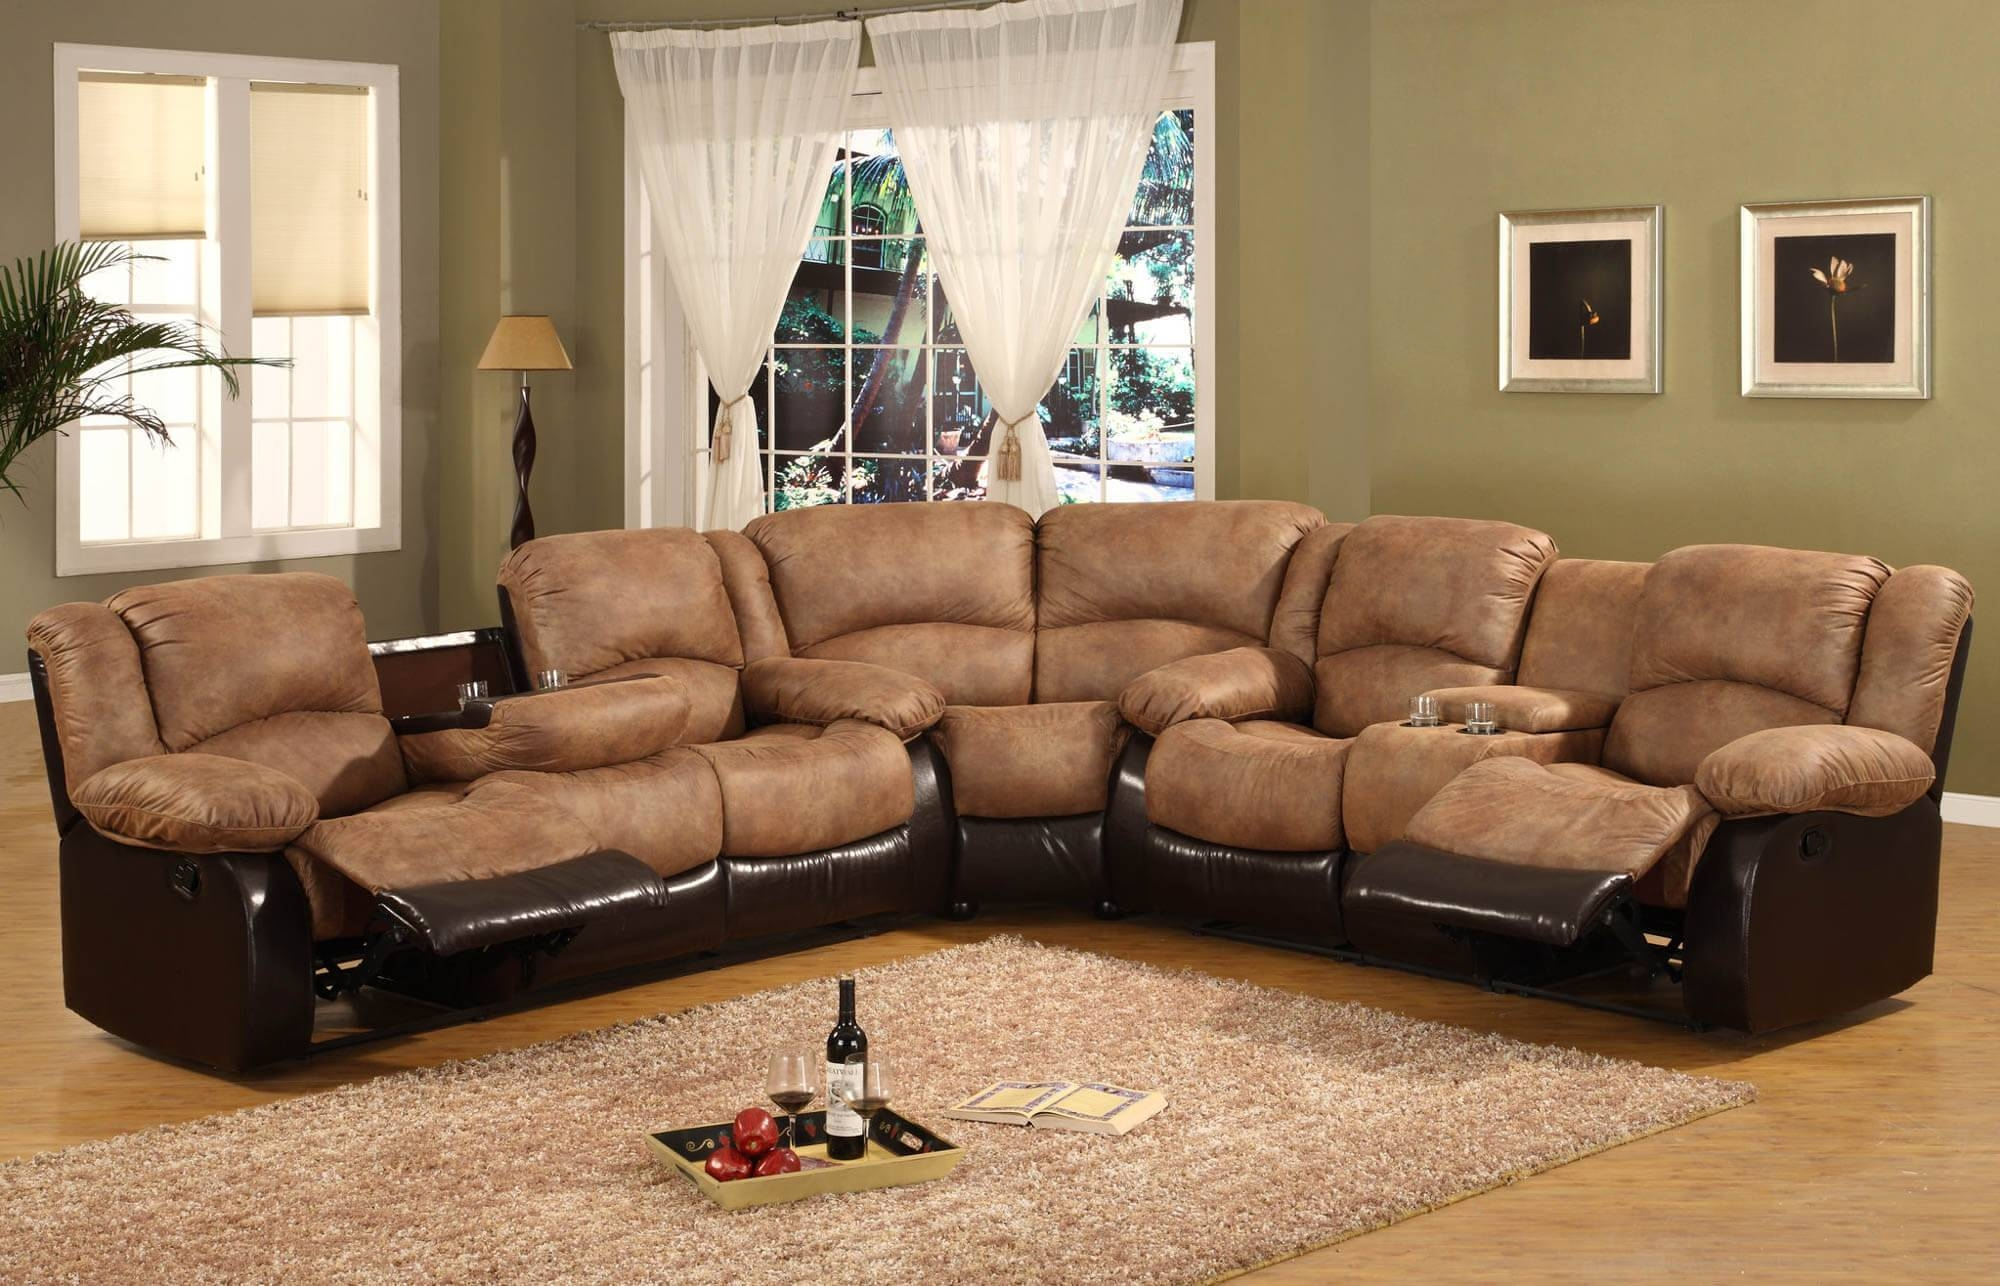 Furniture: Cheapest Sectional Sofas | Clearance Sectional Sofas for Discounted Sectional Sofa (Image 15 of 30)